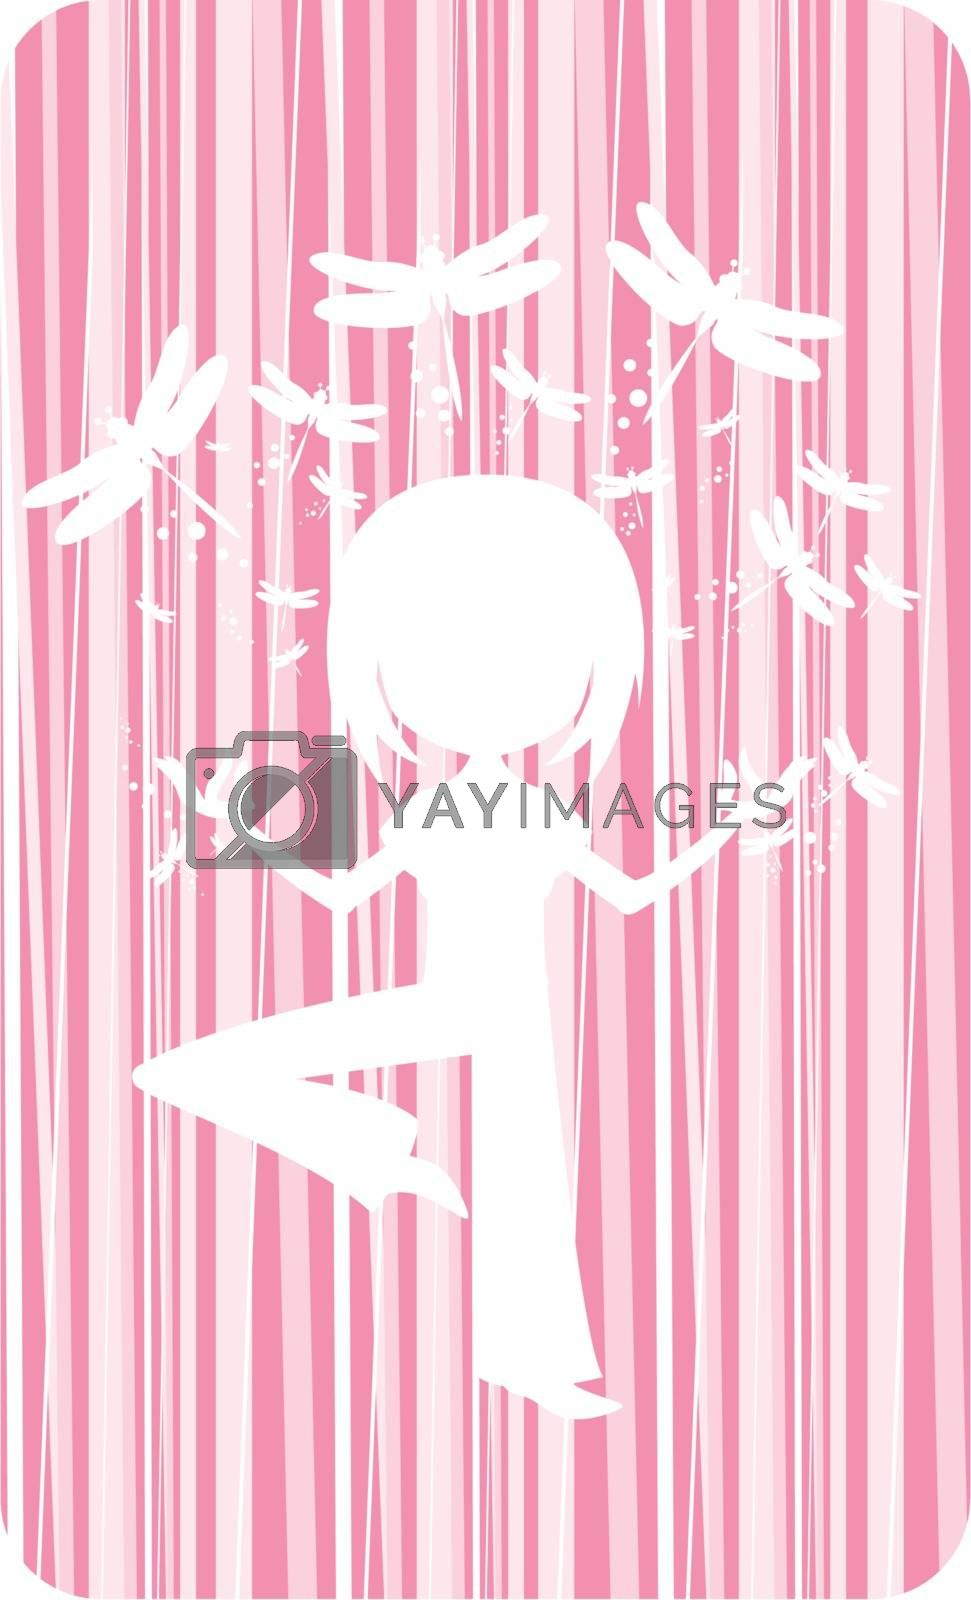 Cartoon Yoga Girl in Silhouette with Dragonflies on a Pink Striped Background Illustration by Mark Murphy Creative